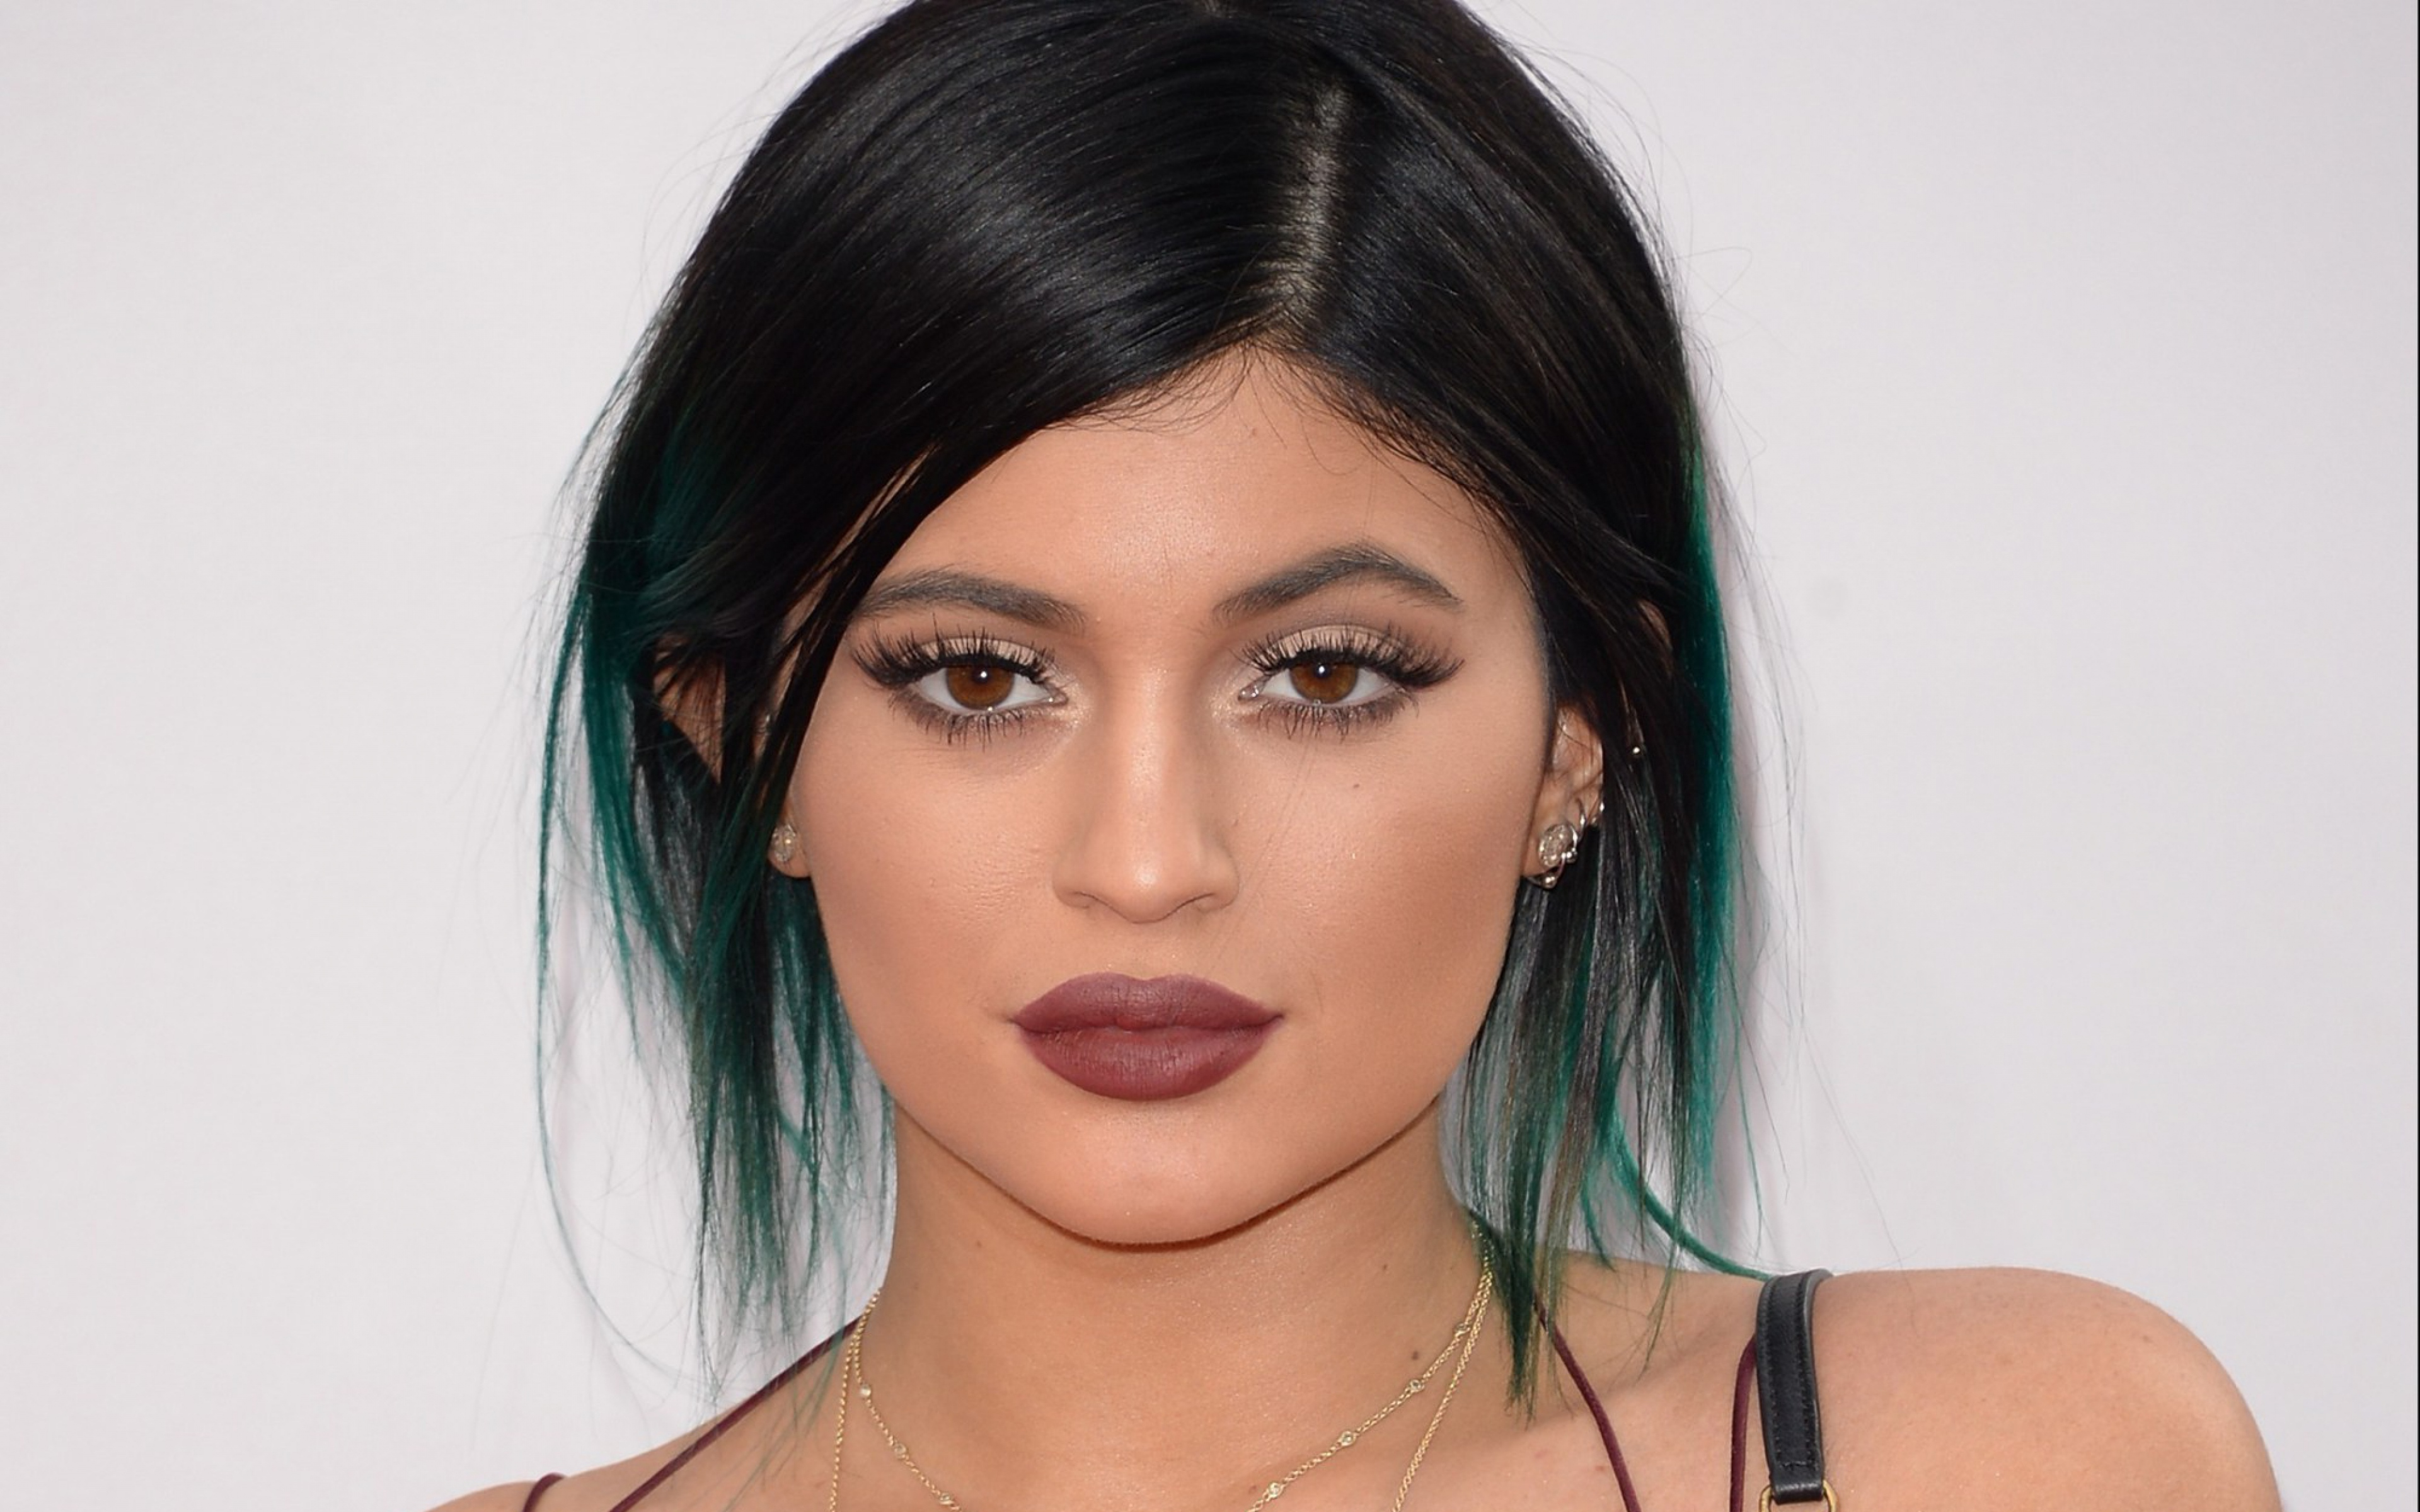 Pictures Of Kylie Jenner